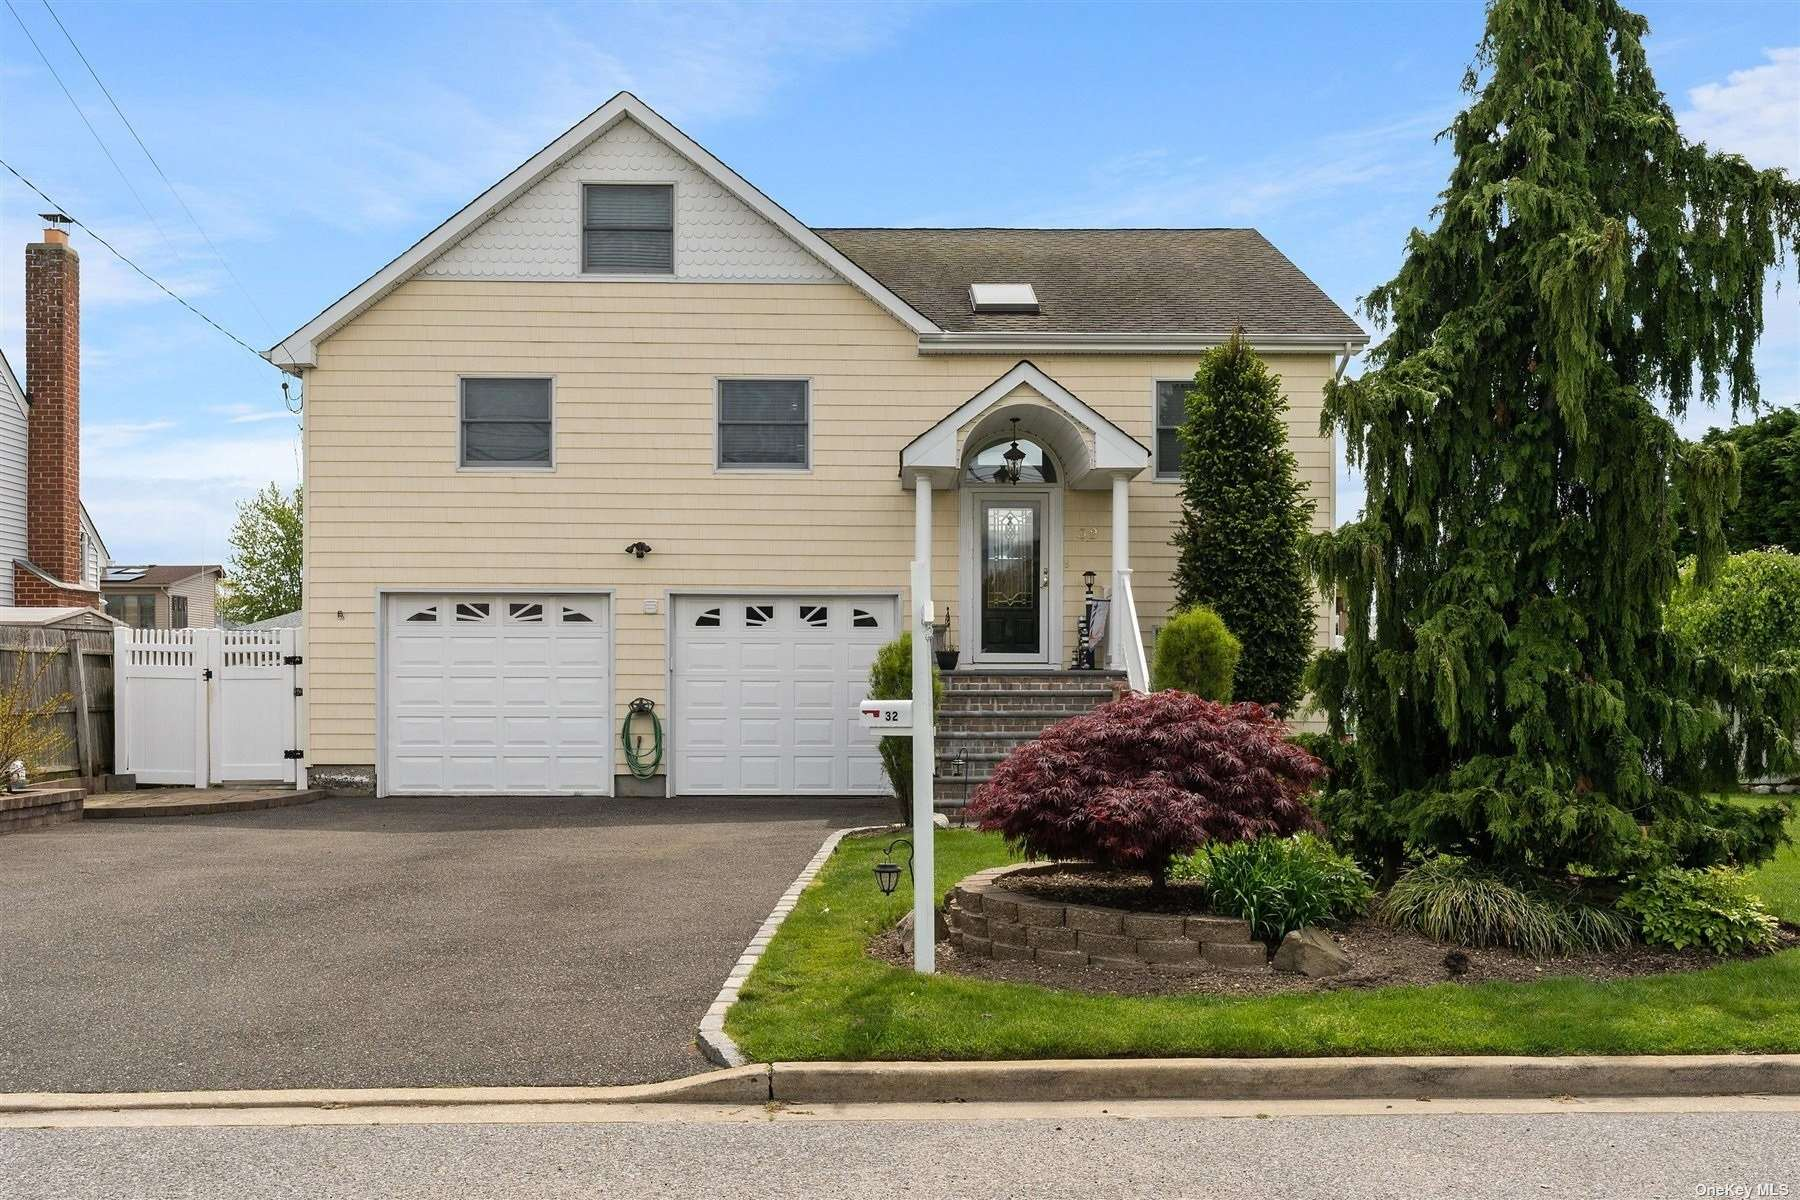 Beautiful Colonial on waterfront property exceptional water 80' bulkheading that sits on one of Massapequa's widest canals. Over 2700 sq. ft. of absolute  waterfront perfection awaits you. Breathtaking views and sunsets. Updates New bulkheading, paved patio, large wrap-around deck, just moments to The Open Bay not to mention a spectacular 80 x 100 lot!